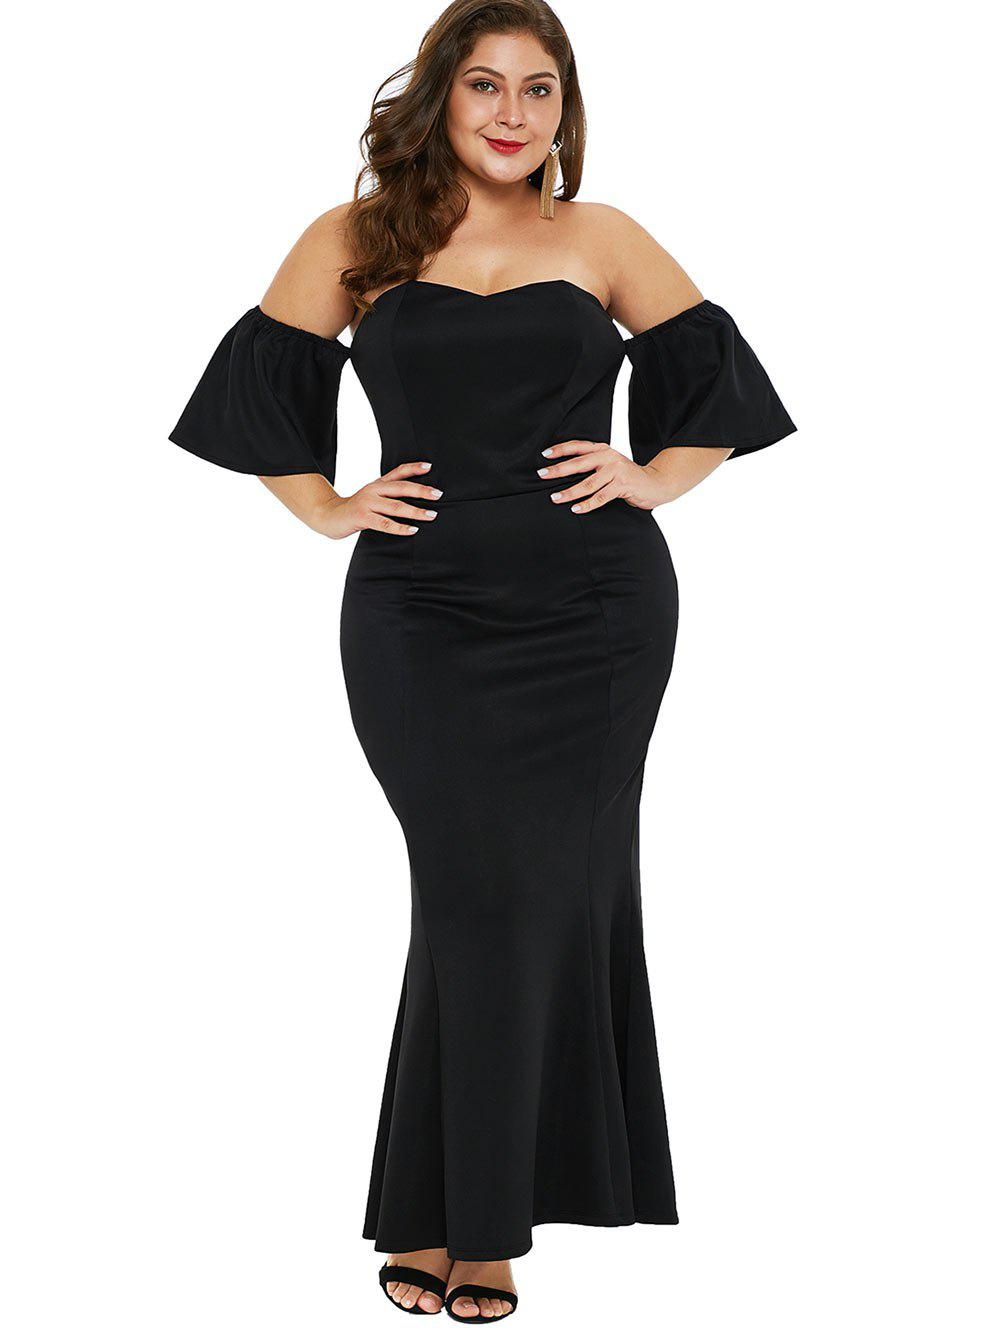 Hot Short Sleeve Plus Size Off The Shoulder Mermaid Dress